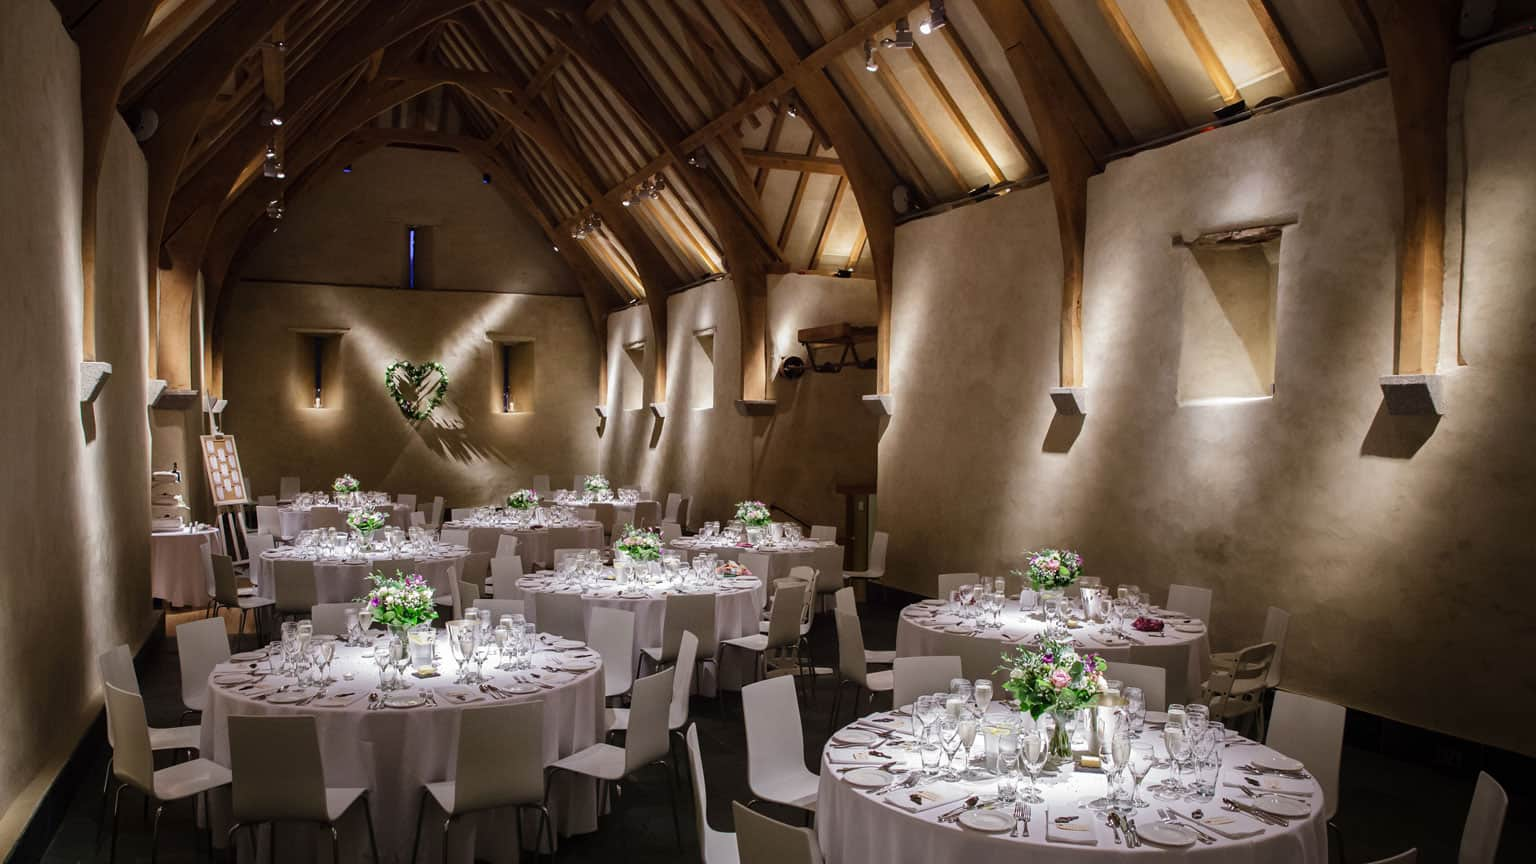 Devon Wedding Venue, The Great Barn Devon